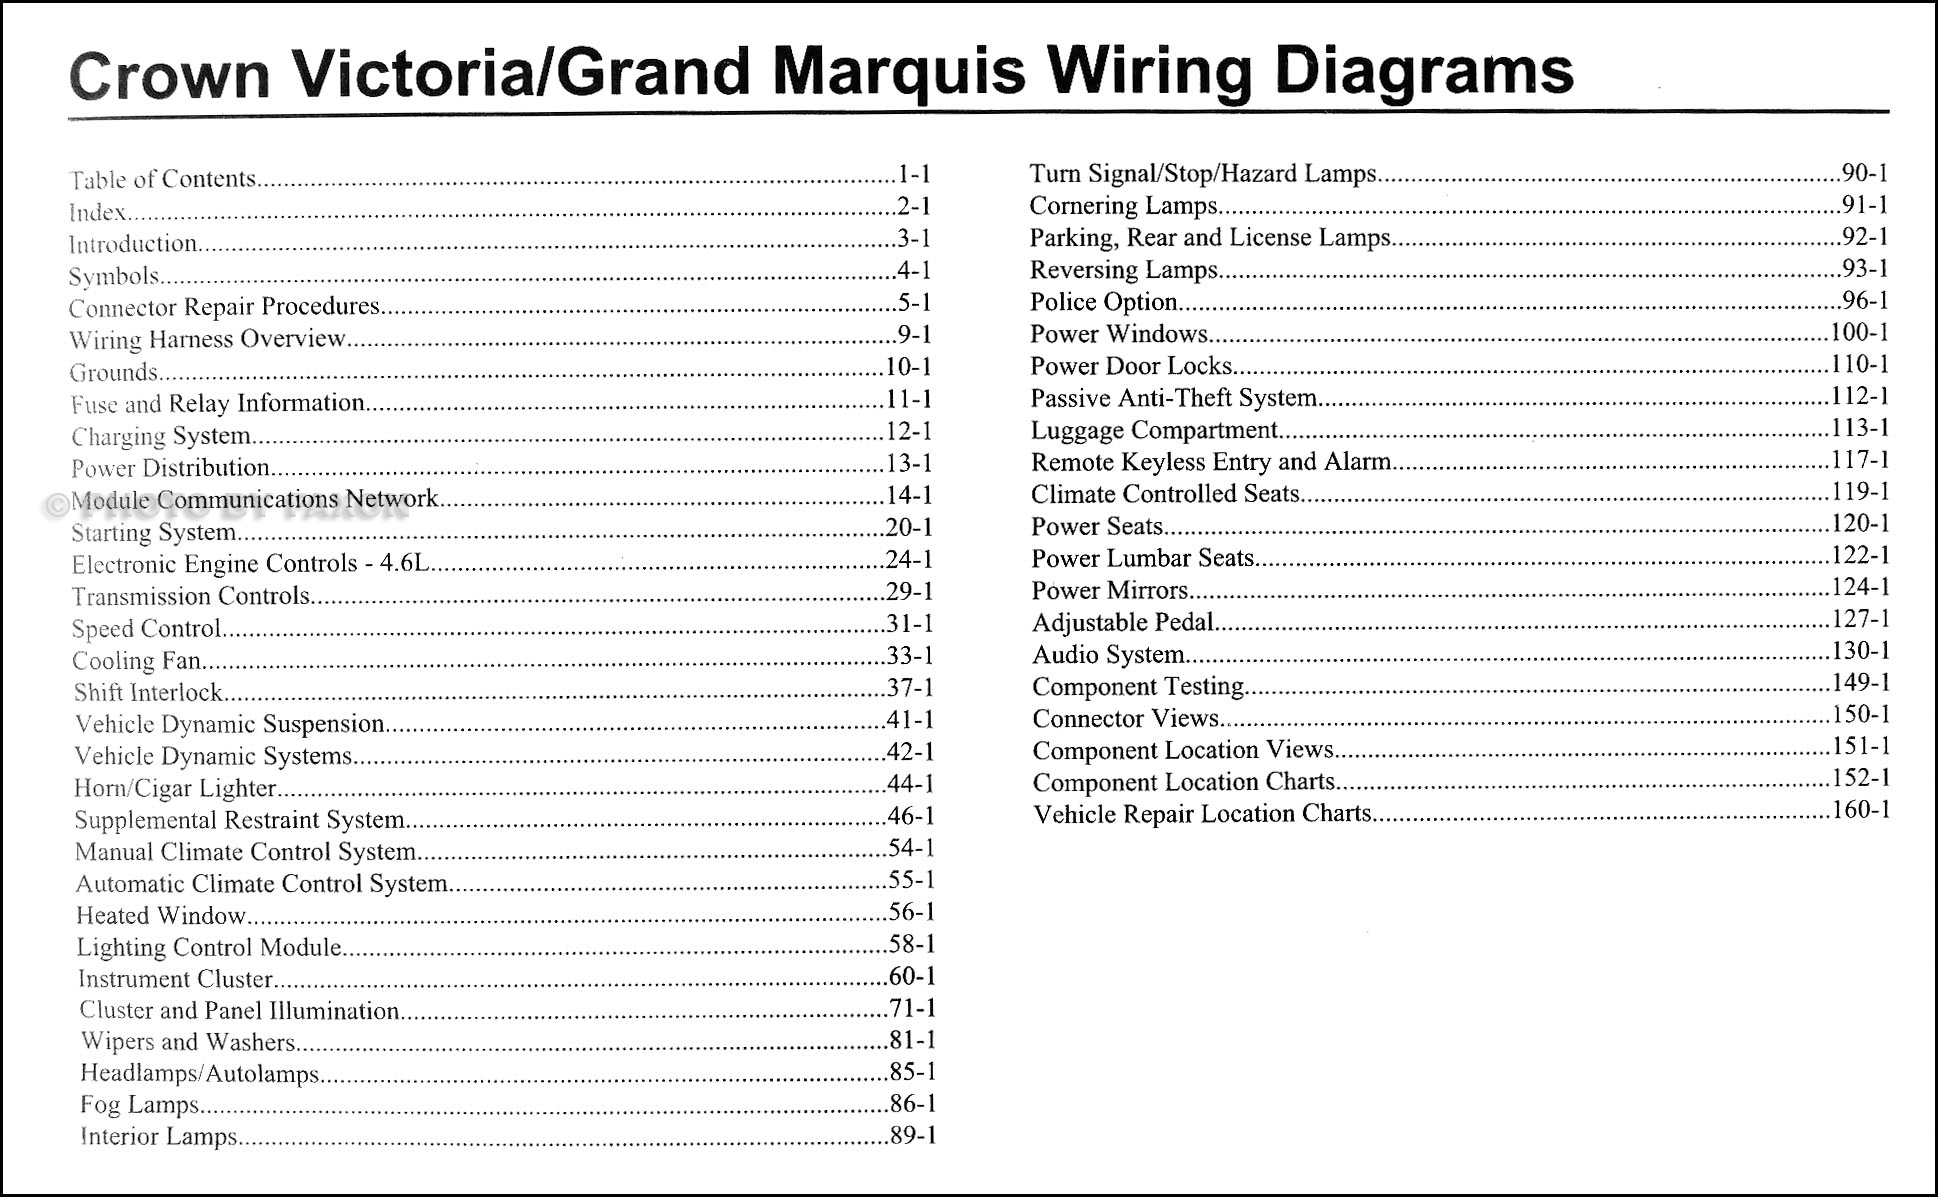 2009FordCrownVictoriaOWD TOC color codes for radio wiring** body and interior crownvic Painless Wiring Diagram at eliteediting.co